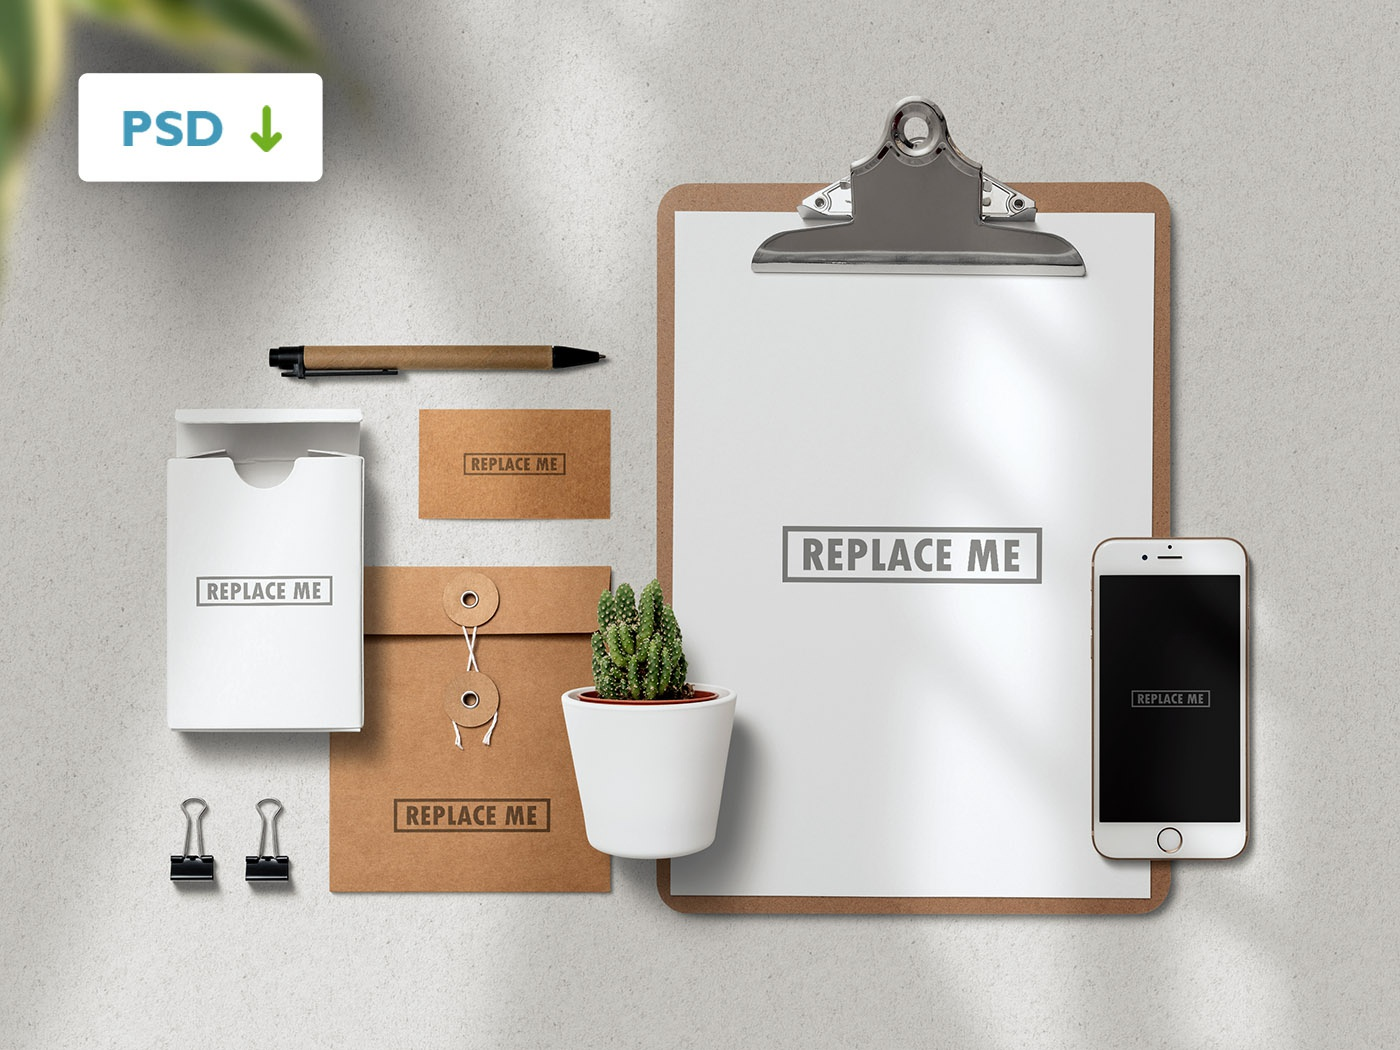 Stationery with Clipboard Mockup stationery mockup freebies